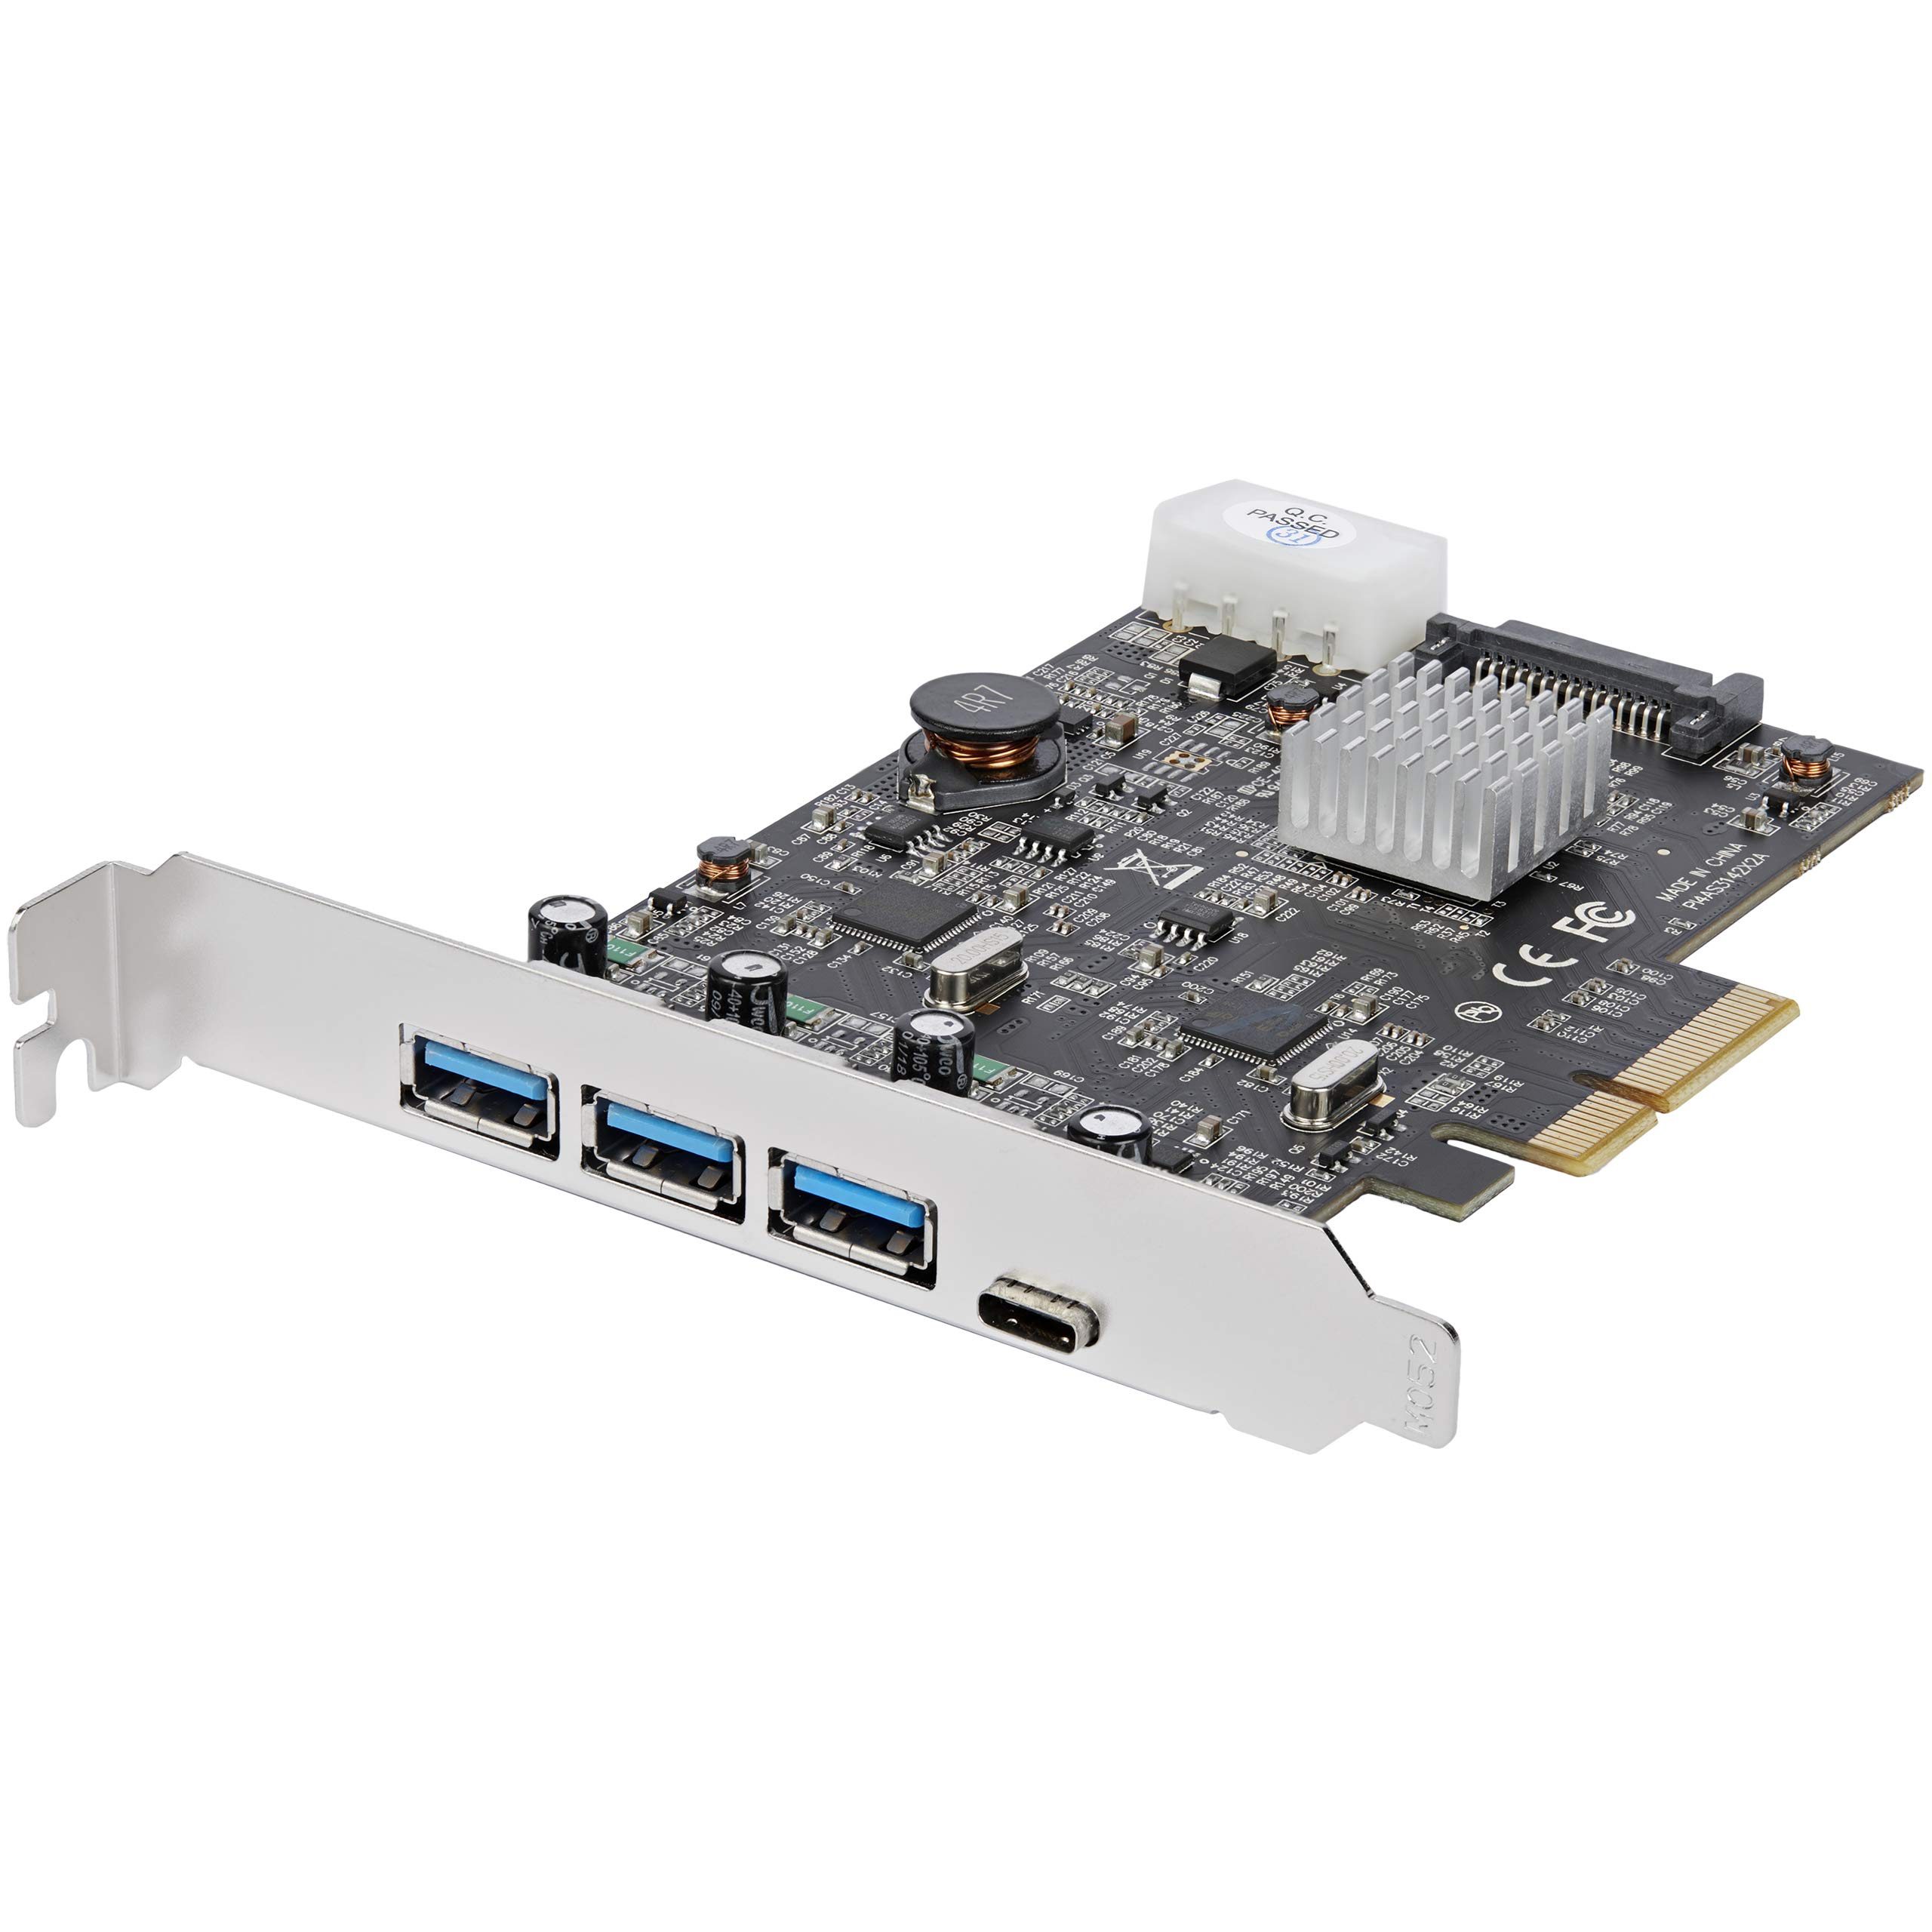 StarTech.com USB 3.1 PCIe Card - 3X USB-A and 1x USB-C - 2X Dedicated Channels - USB C PCIe Card - USB 3.1 Controller Card by StarTech (Image #1)